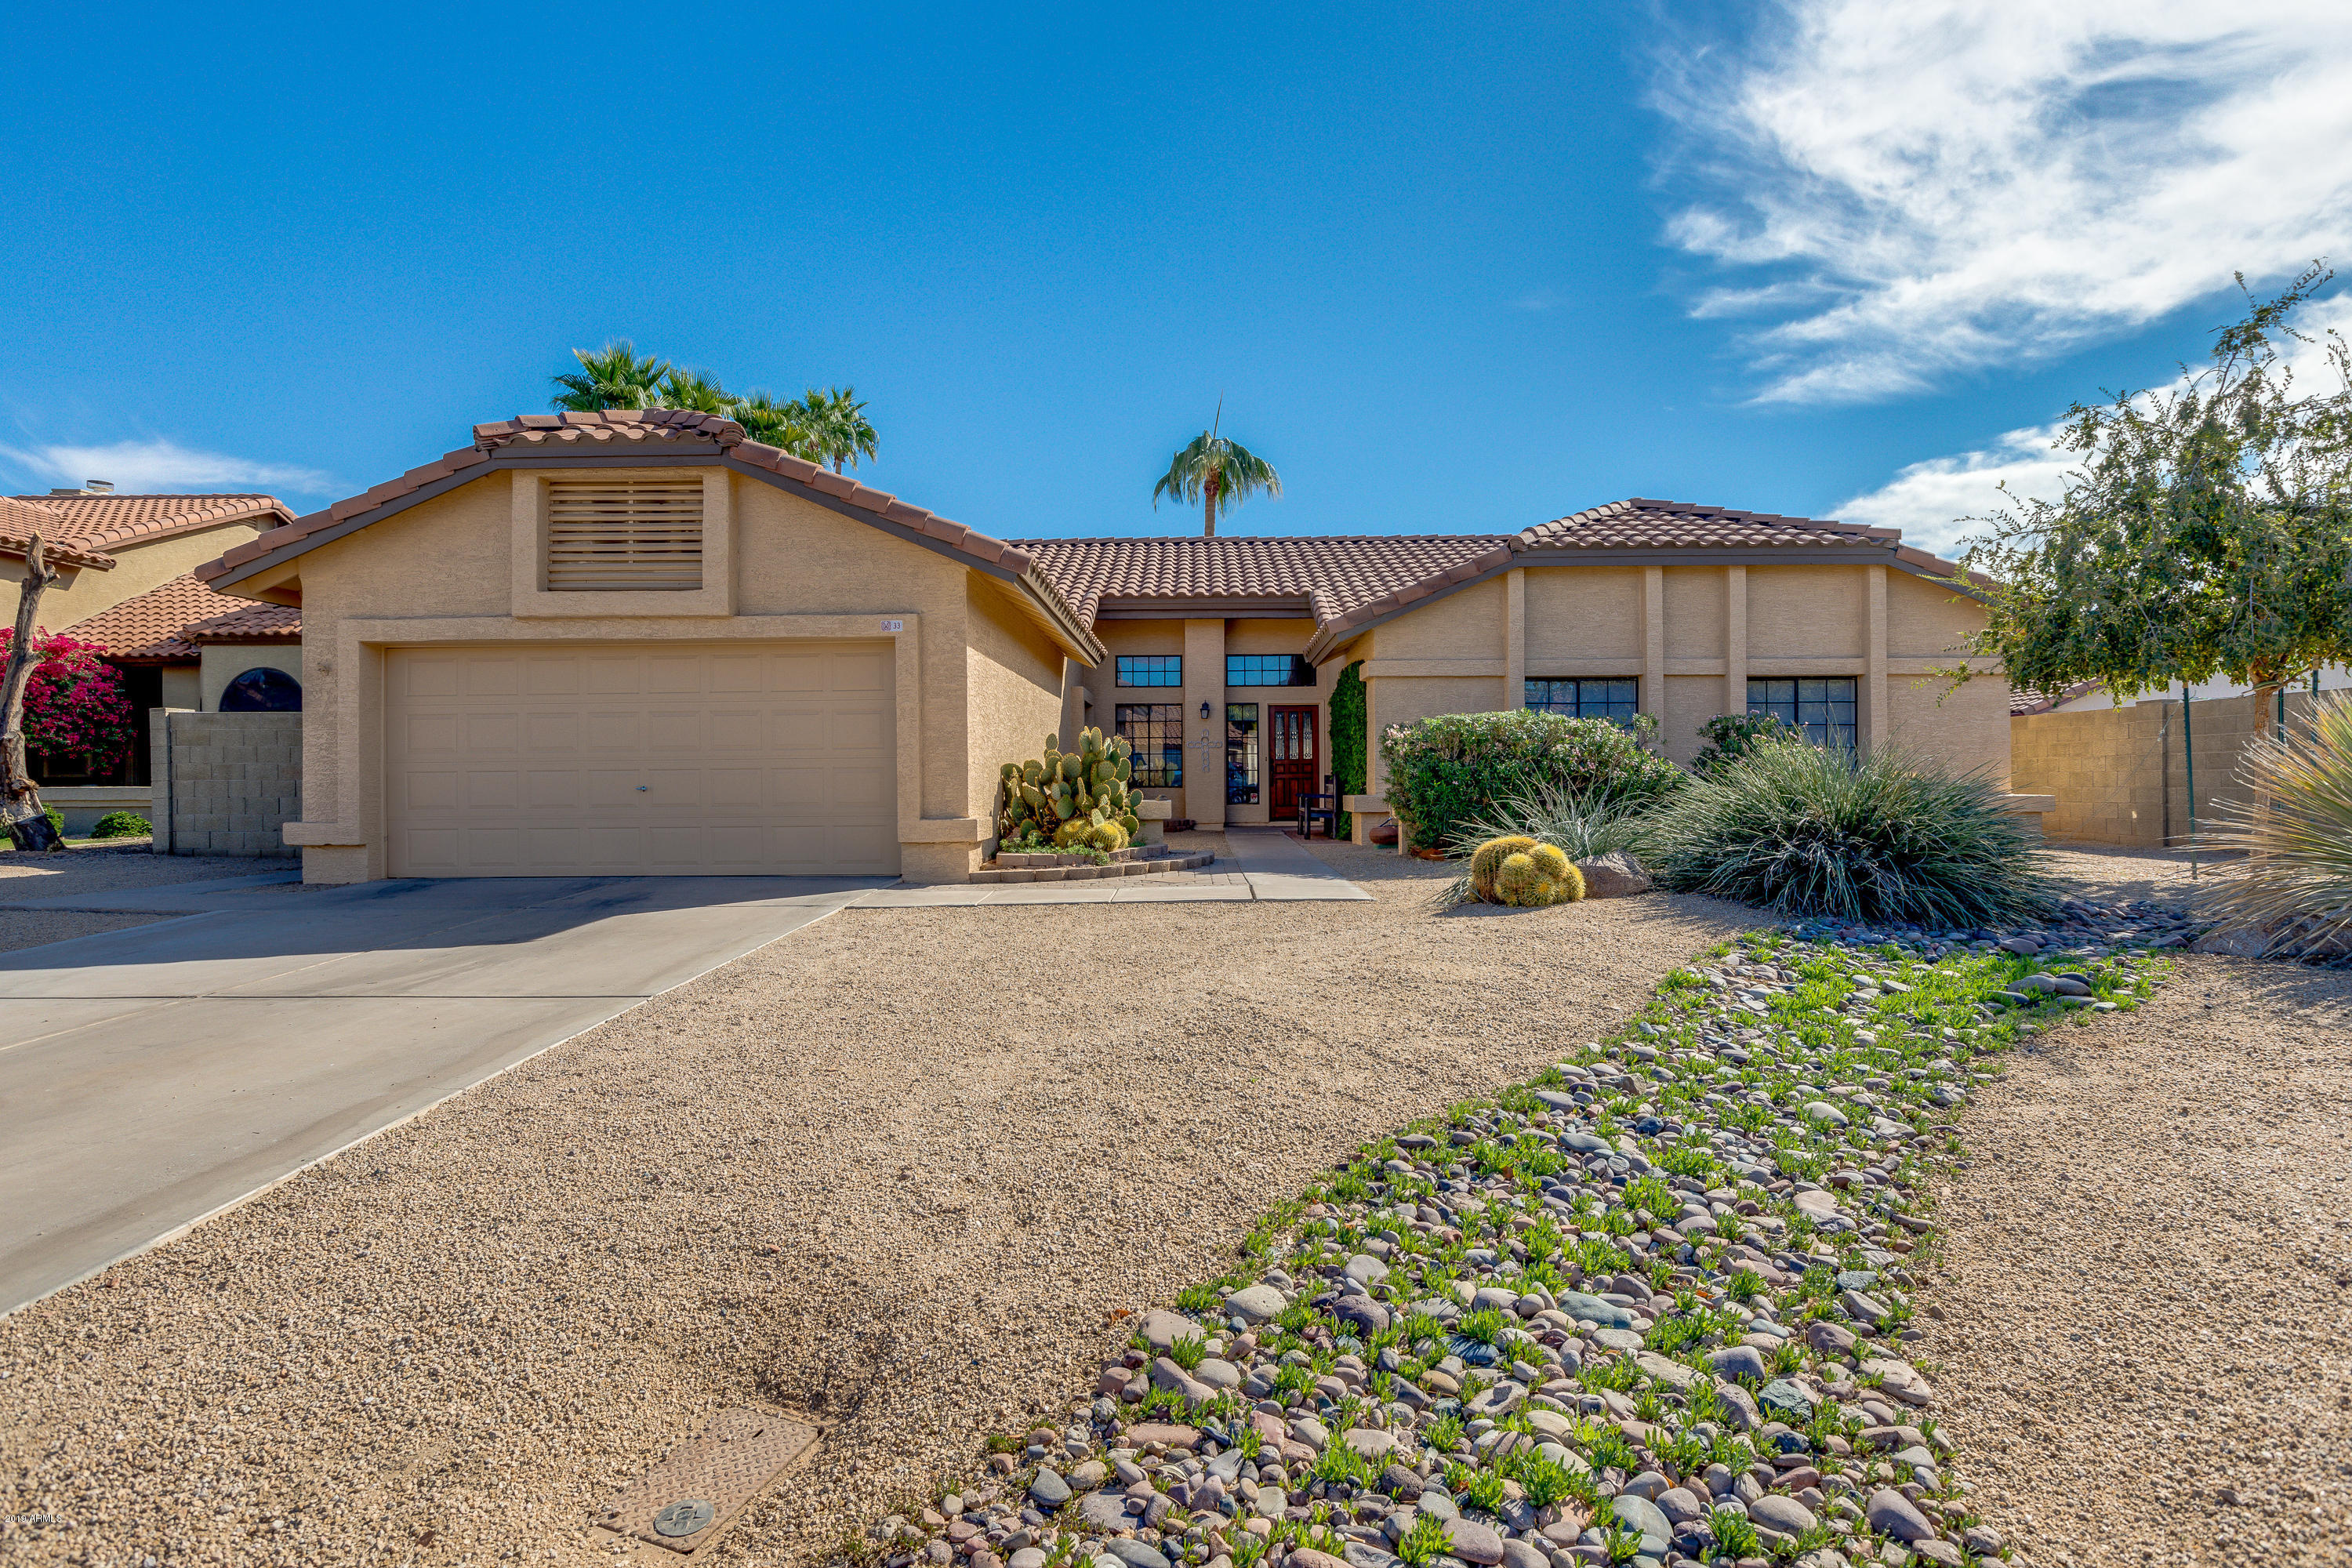 Photo of 33 S RIATA Drive, Gilbert, AZ 85296